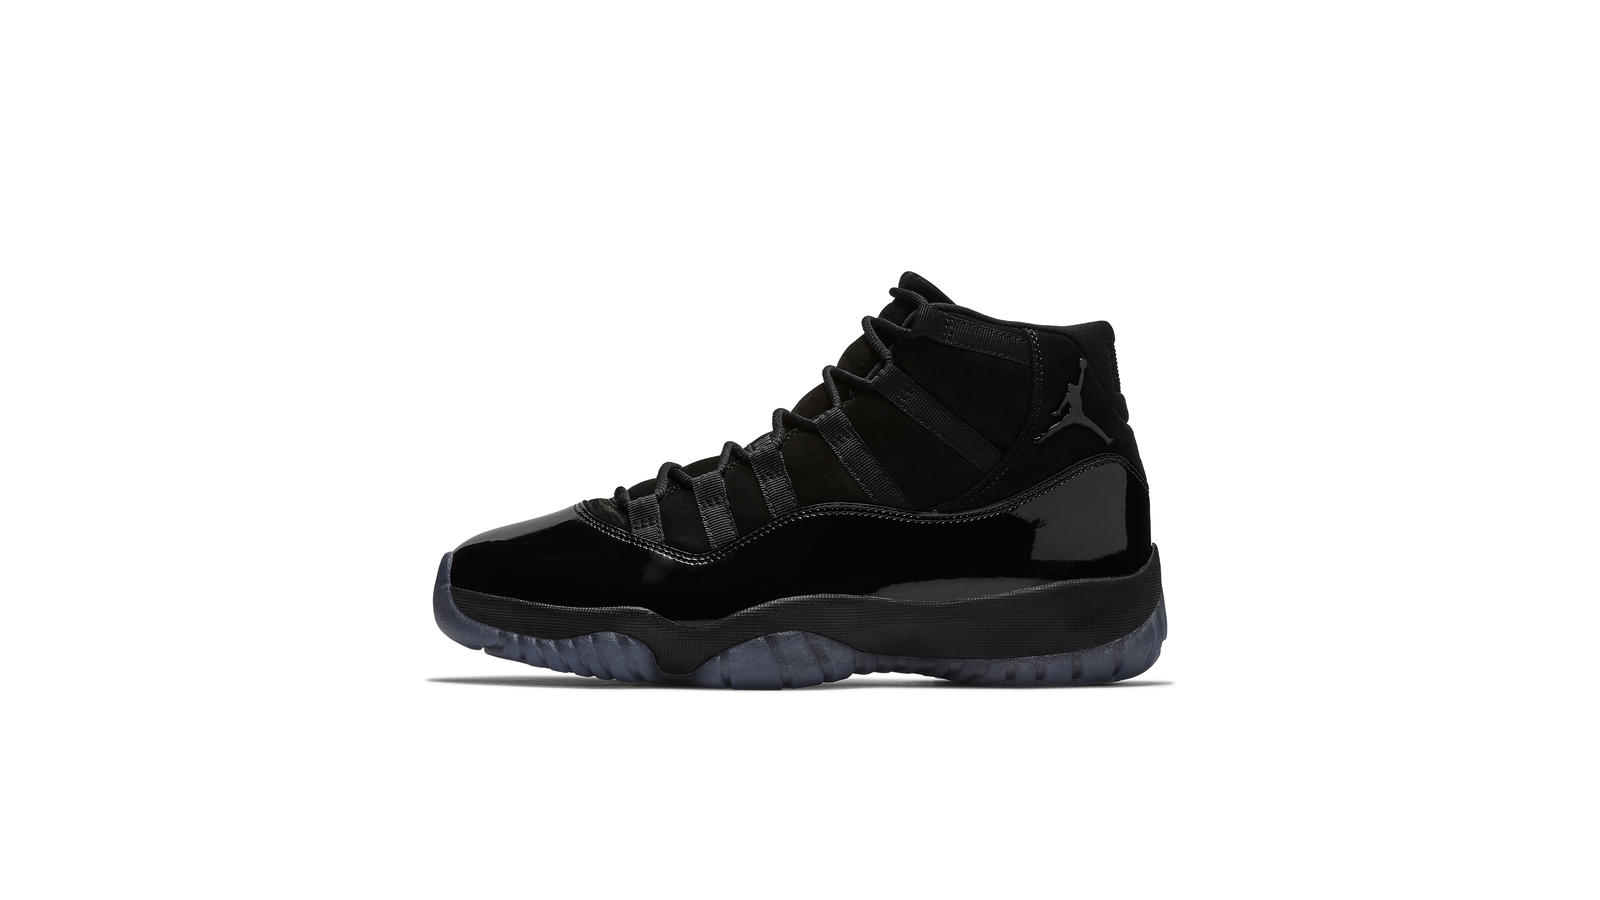 89b0244860e3d8 Nike Air Jordan 11 Cap and Gown - Nike News